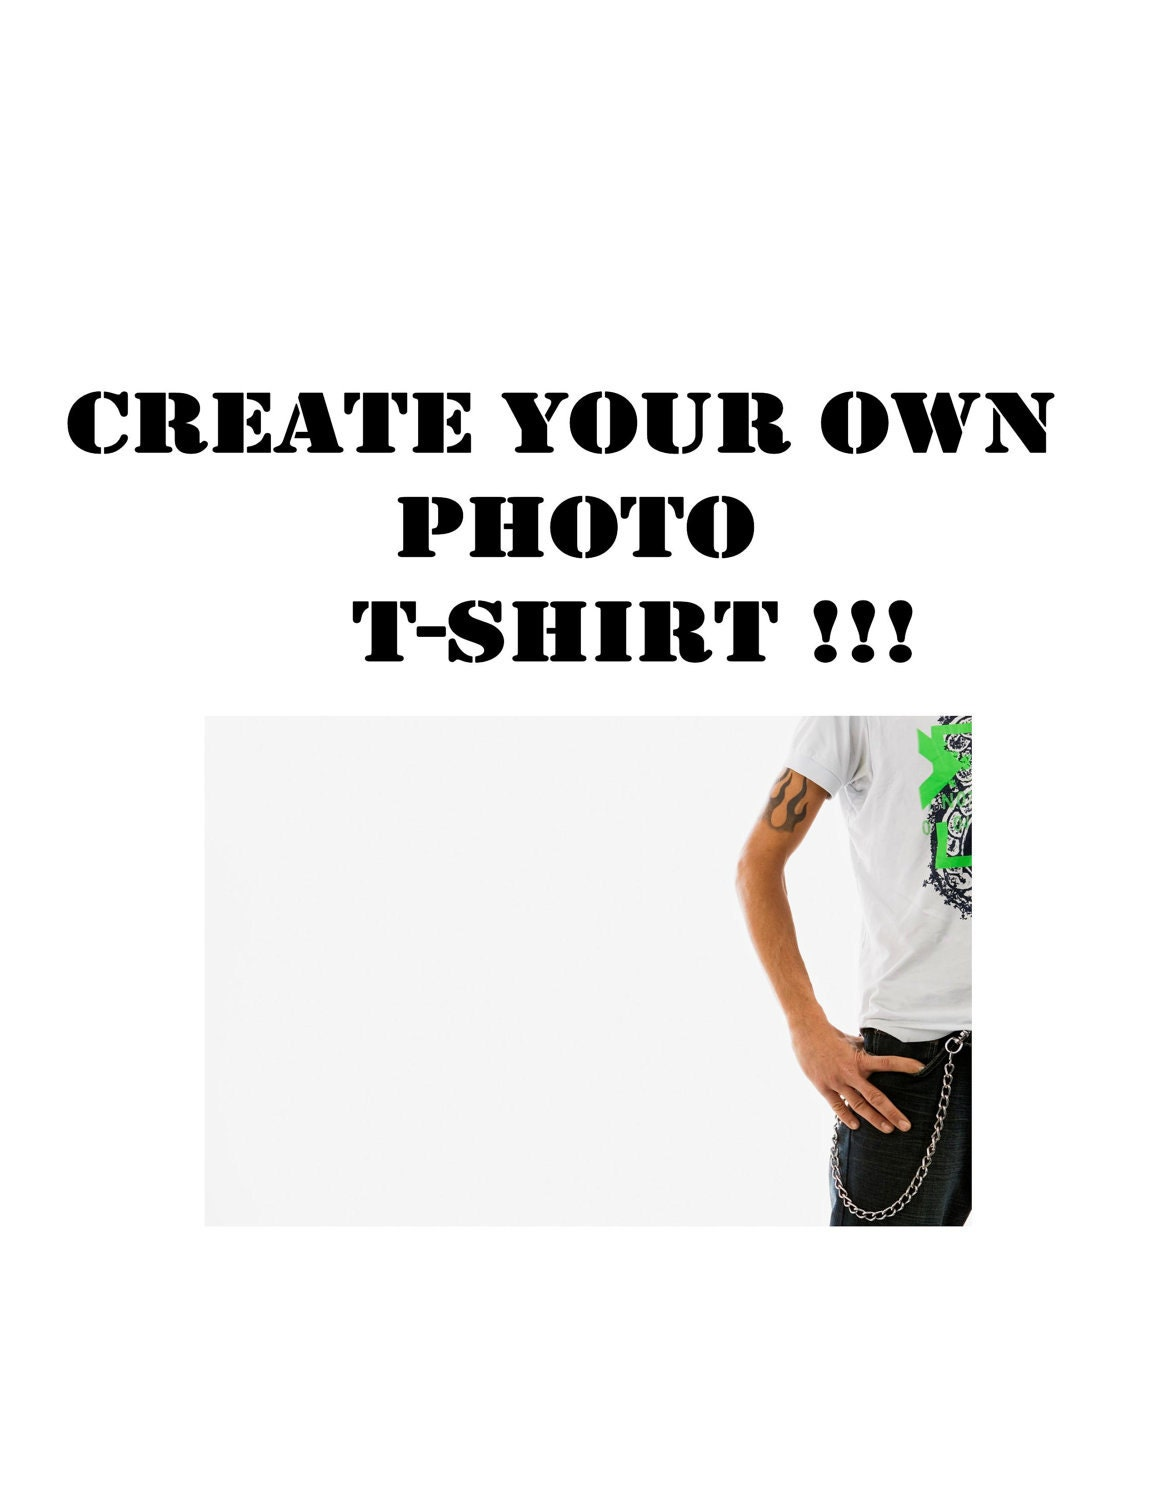 Create your own photo t shirt Build your own t shirts